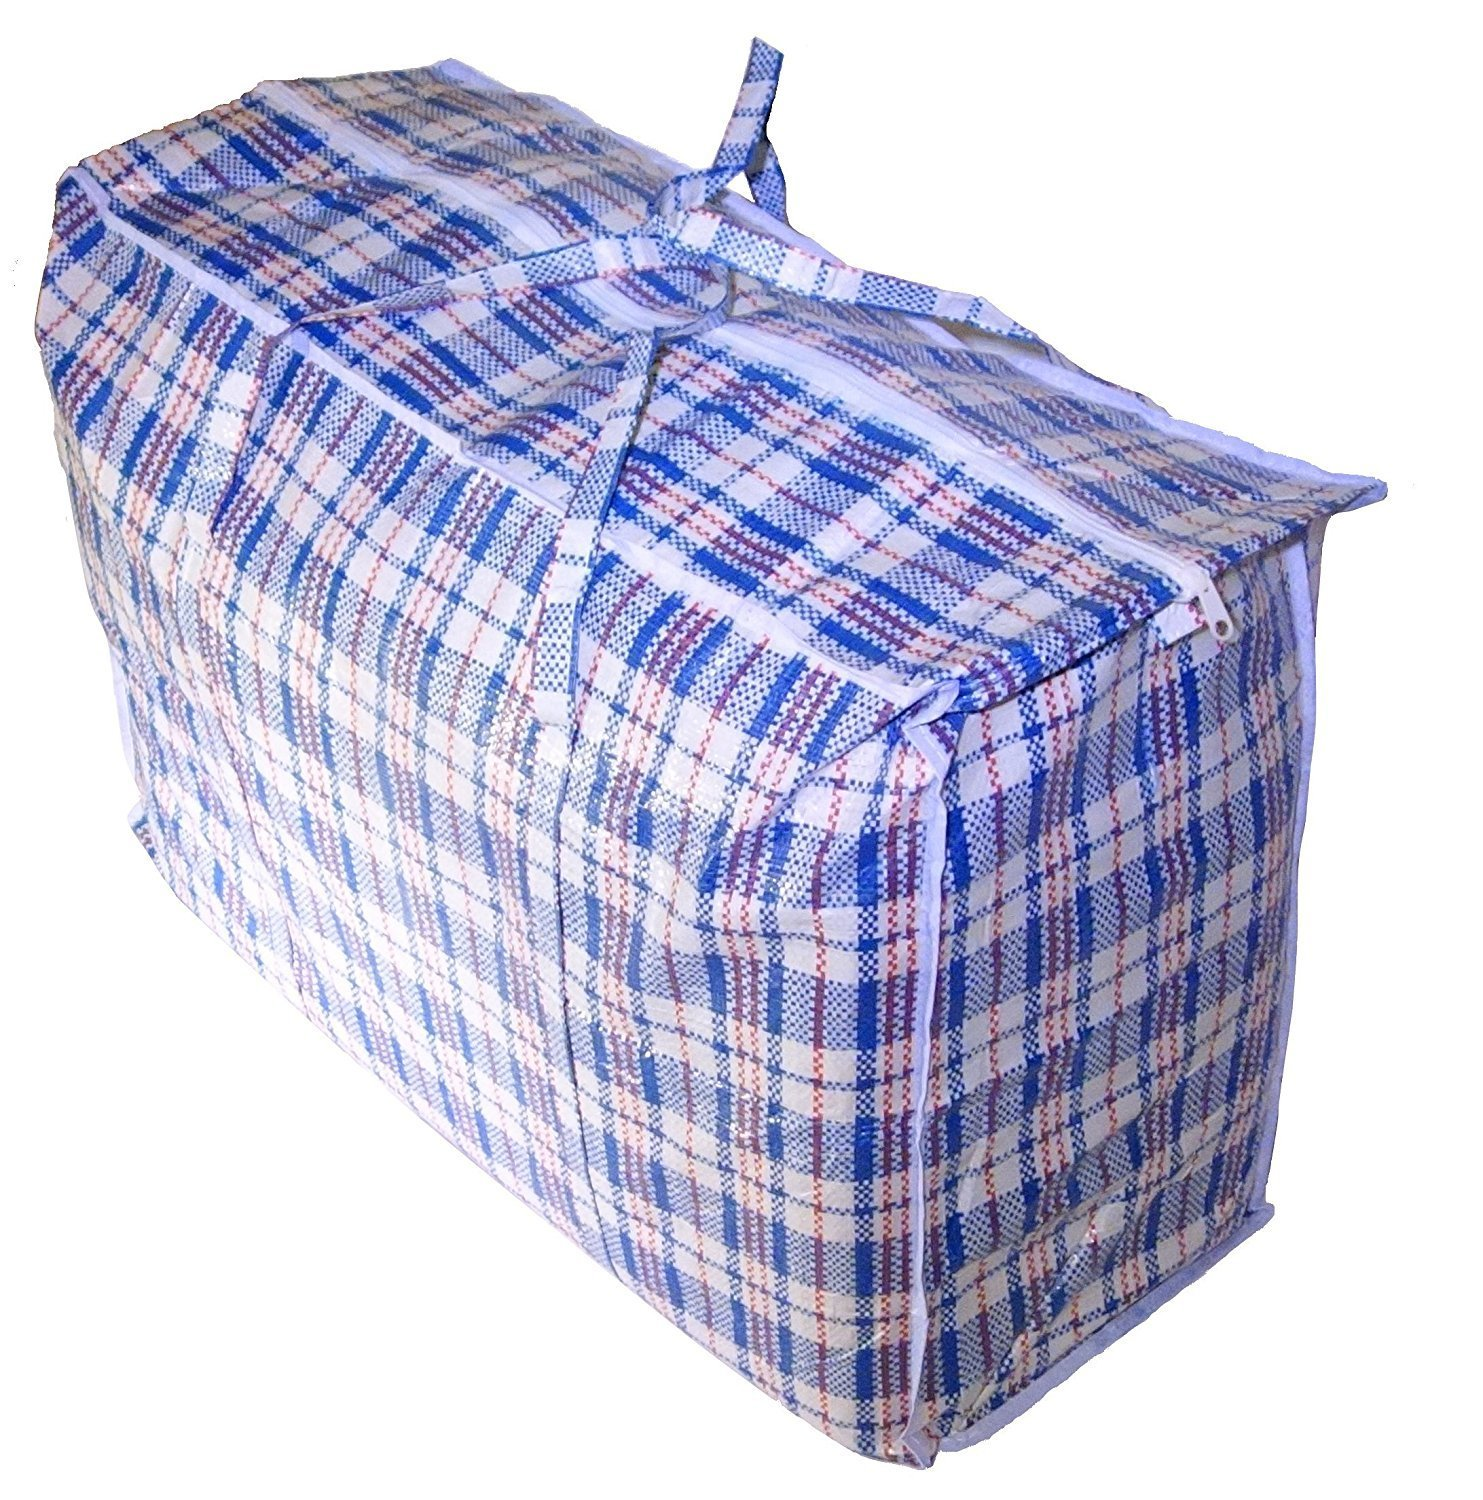 """Set of 3 SUPER GIANT JUMBO Laundry/Storage/Transport/DormRoom Checker Shopping Bags with Zipper & Handles, Size=27""""H x 31""""L x 7""""W Colors Vary between Blue/Red/Black/White Check Design"""